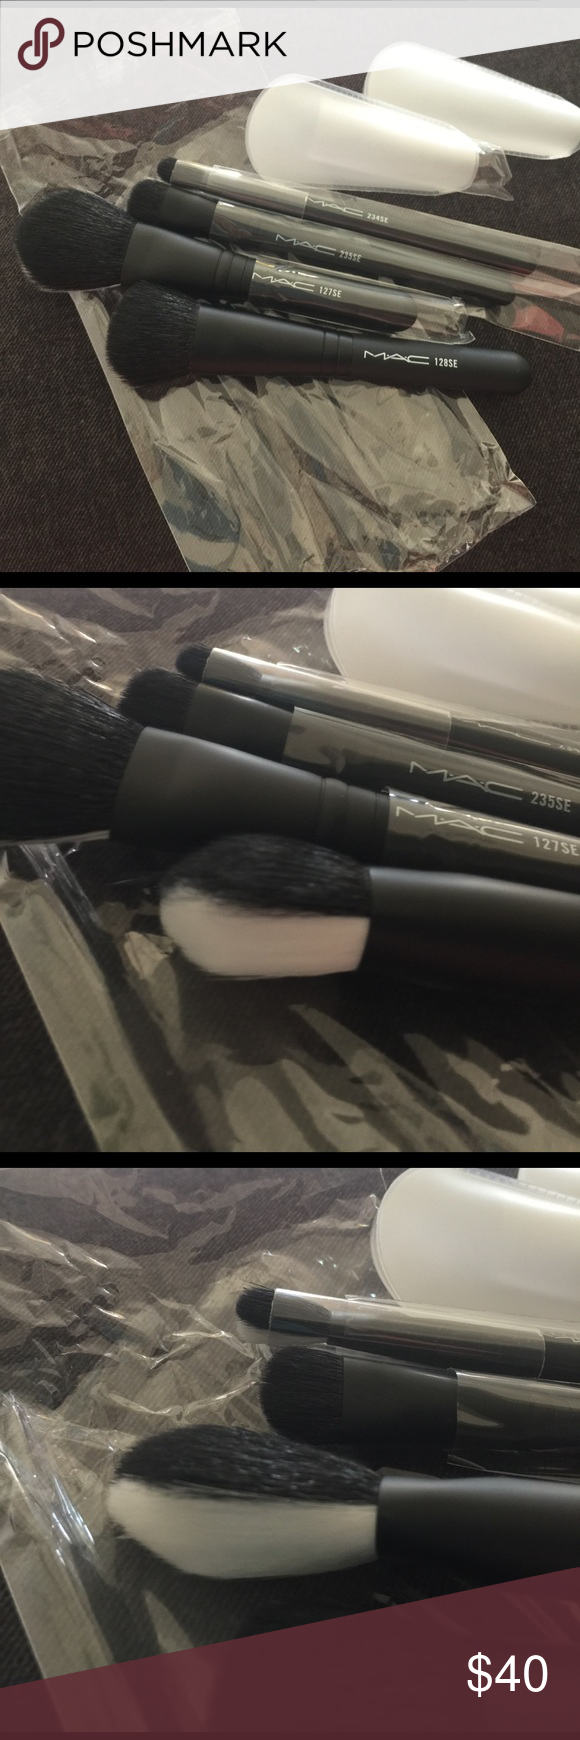 MAC Cosmetics 4 piece make up brushes Brand New never used, still in plastic wrap. Only removed for photos. Numbers are on the handles. Black & white brushes MAC Cosmetics Makeup Brushes & Tools